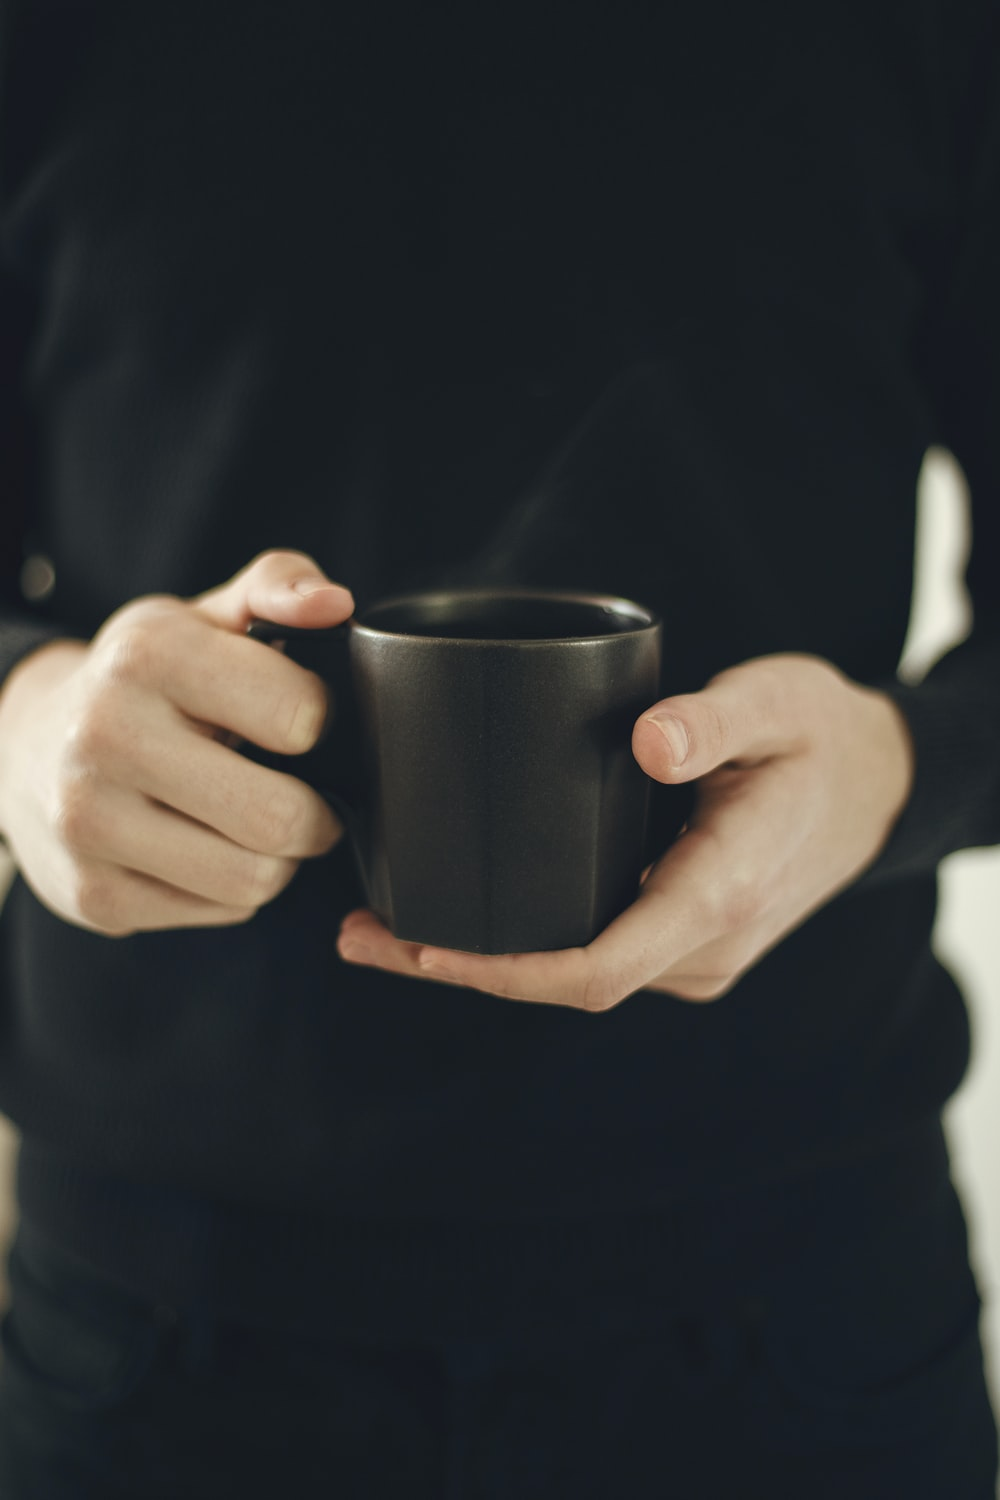 person holding black ceramic mug